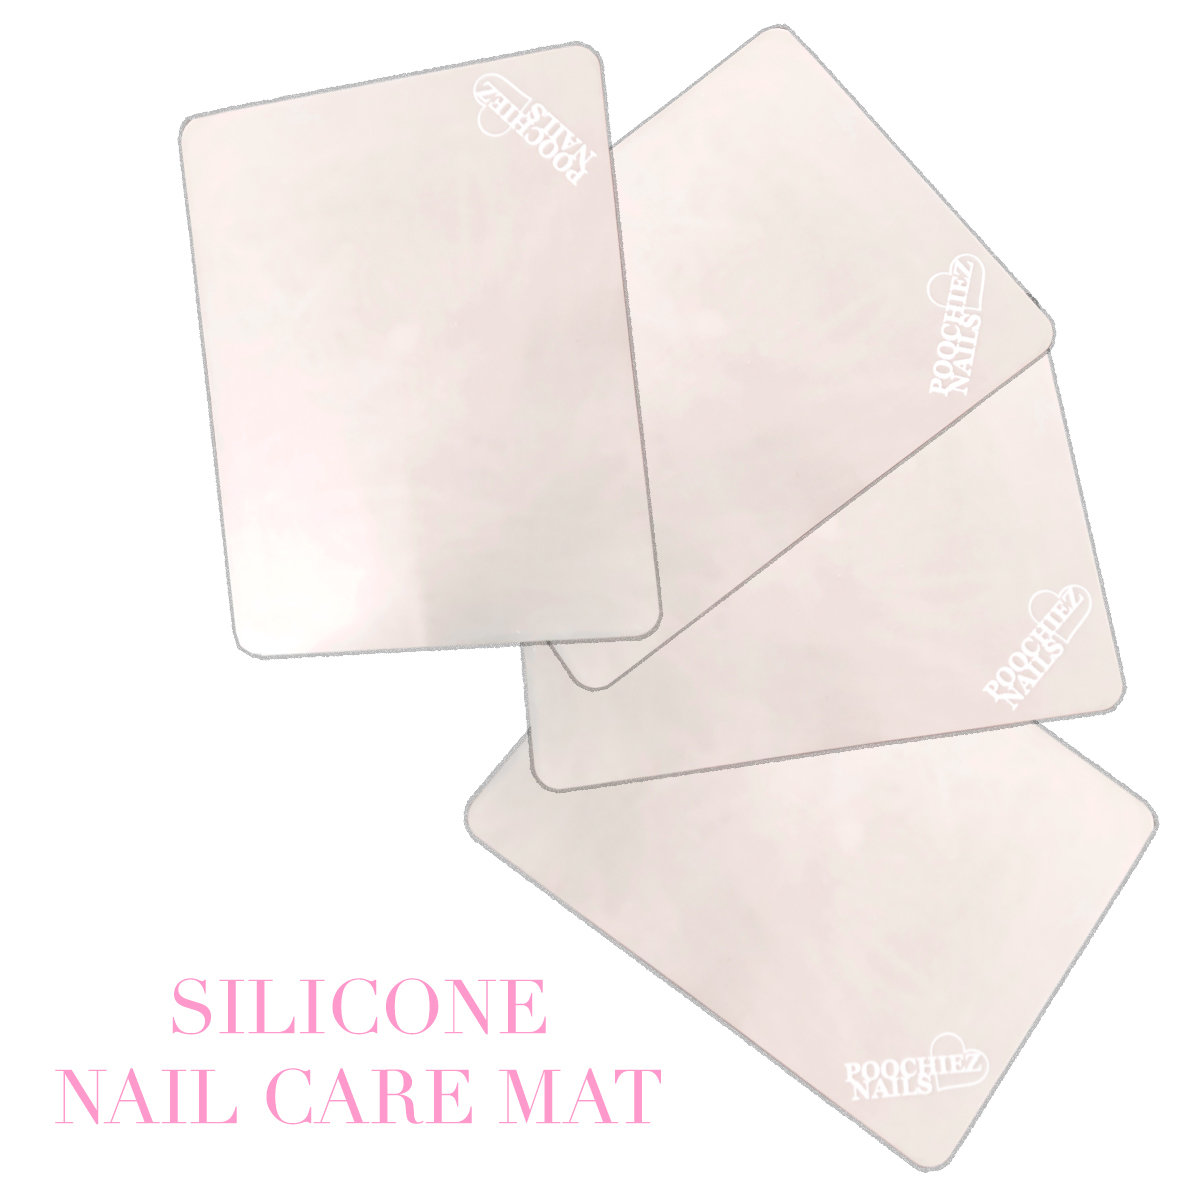 POOCHIEZ NAILS / NAIL CARE MAT